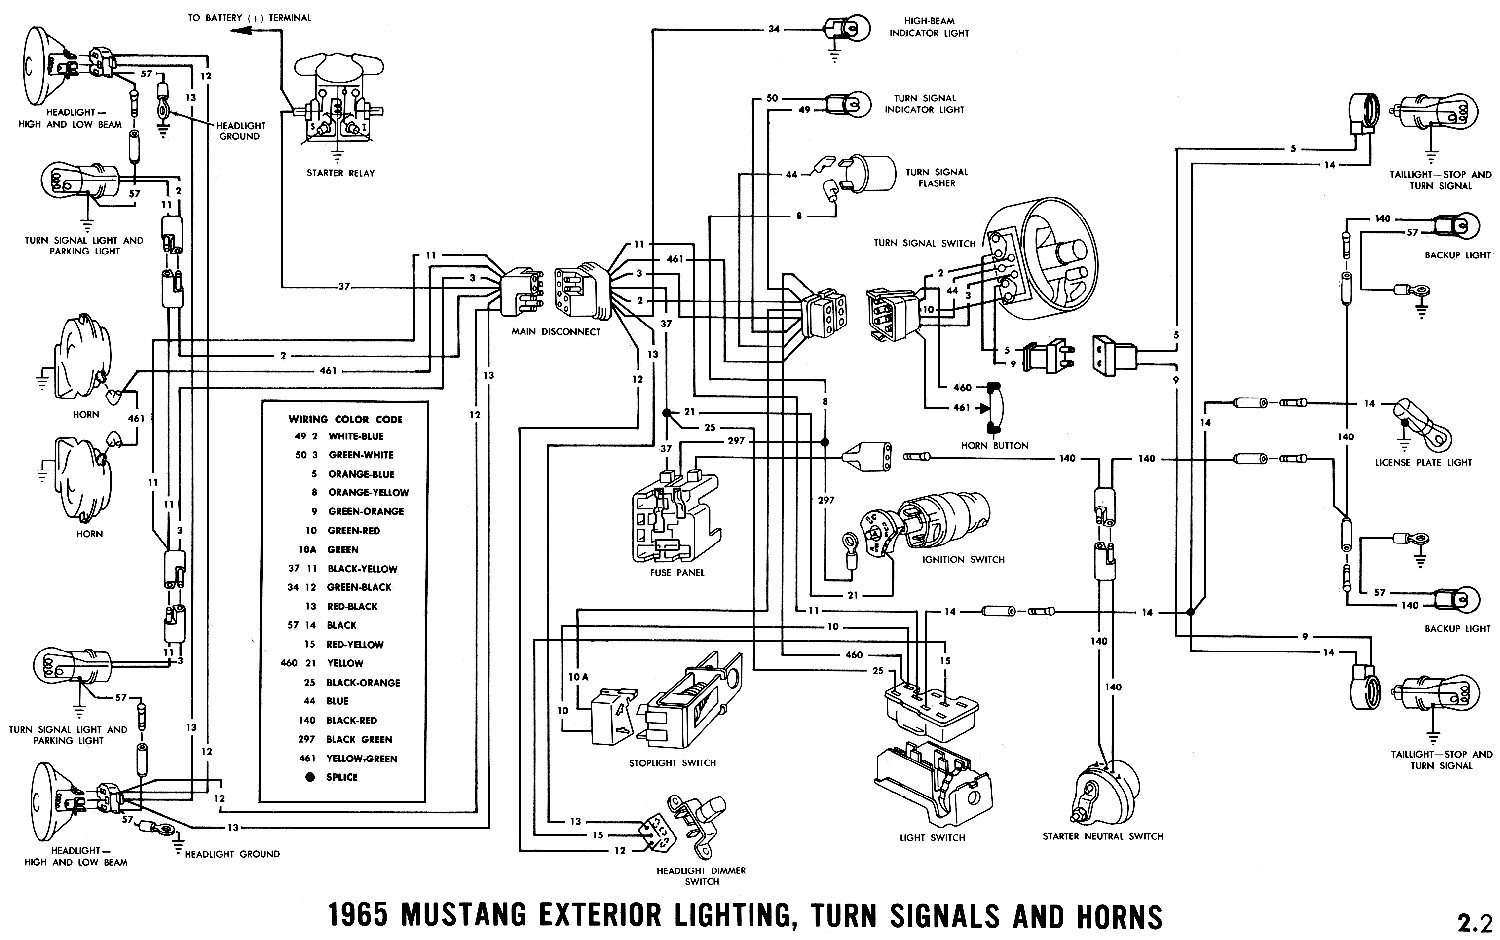 1965 Mustang Wiring Diagrams Average Joe Restoration For Cars Headlamps